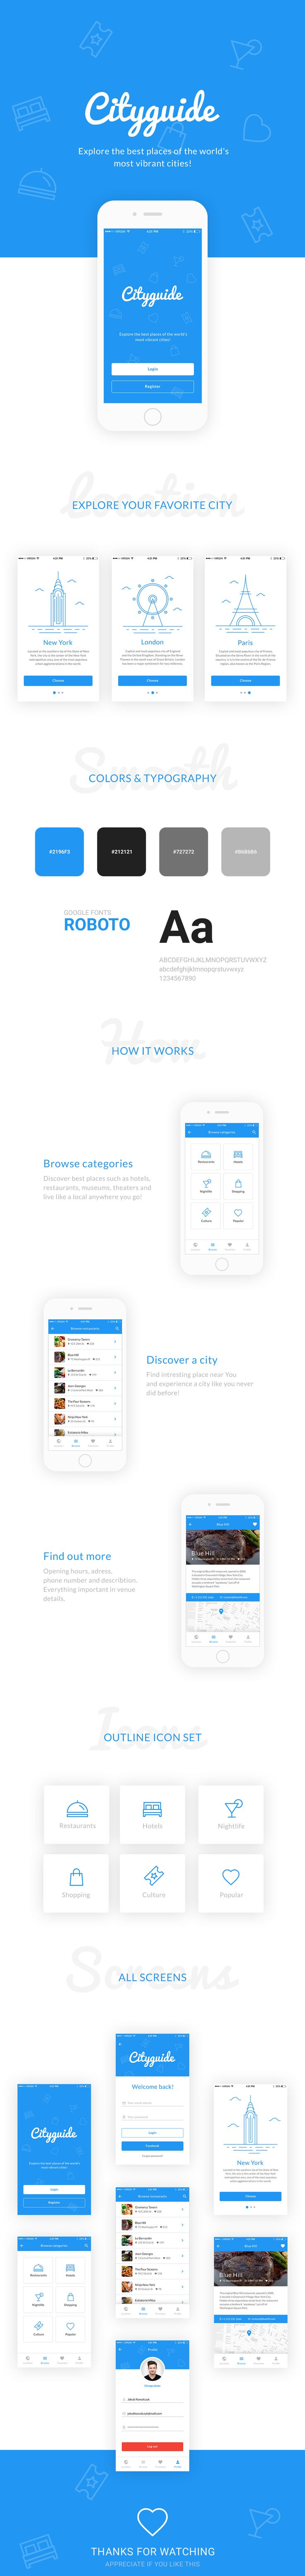 Cityguide Mobile App Template includes 7 well-layered screens. Cityguide can be very helpful if you're planning create great looking mobile app.